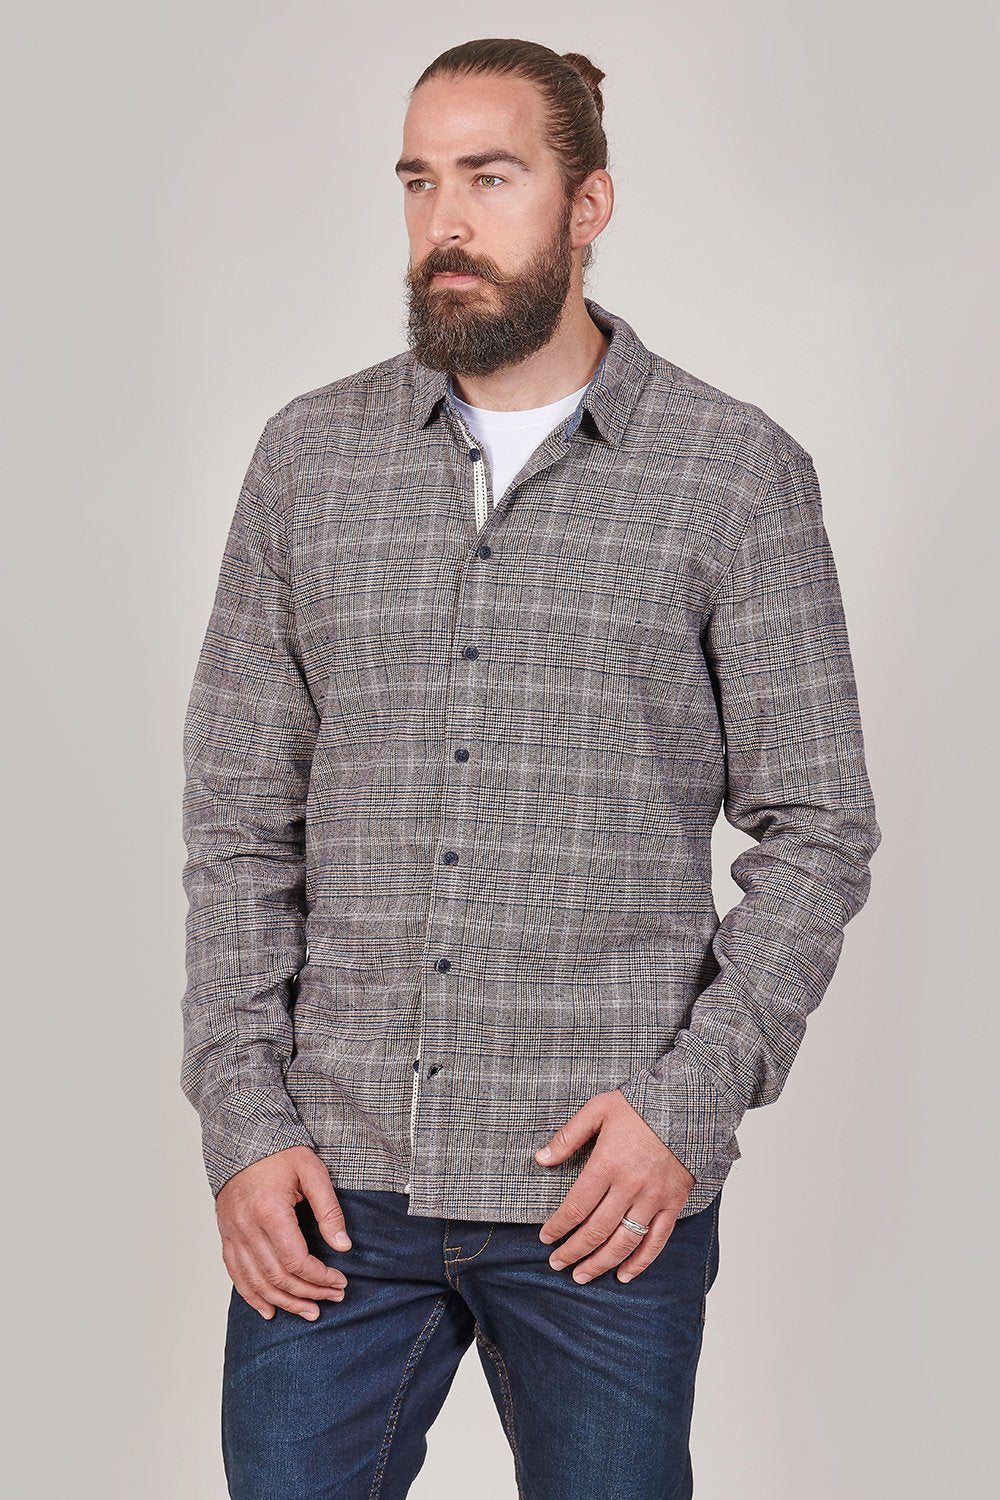 Blend Blend Cotton Prince Of Wales Check Shirt In Light Brown £34.99